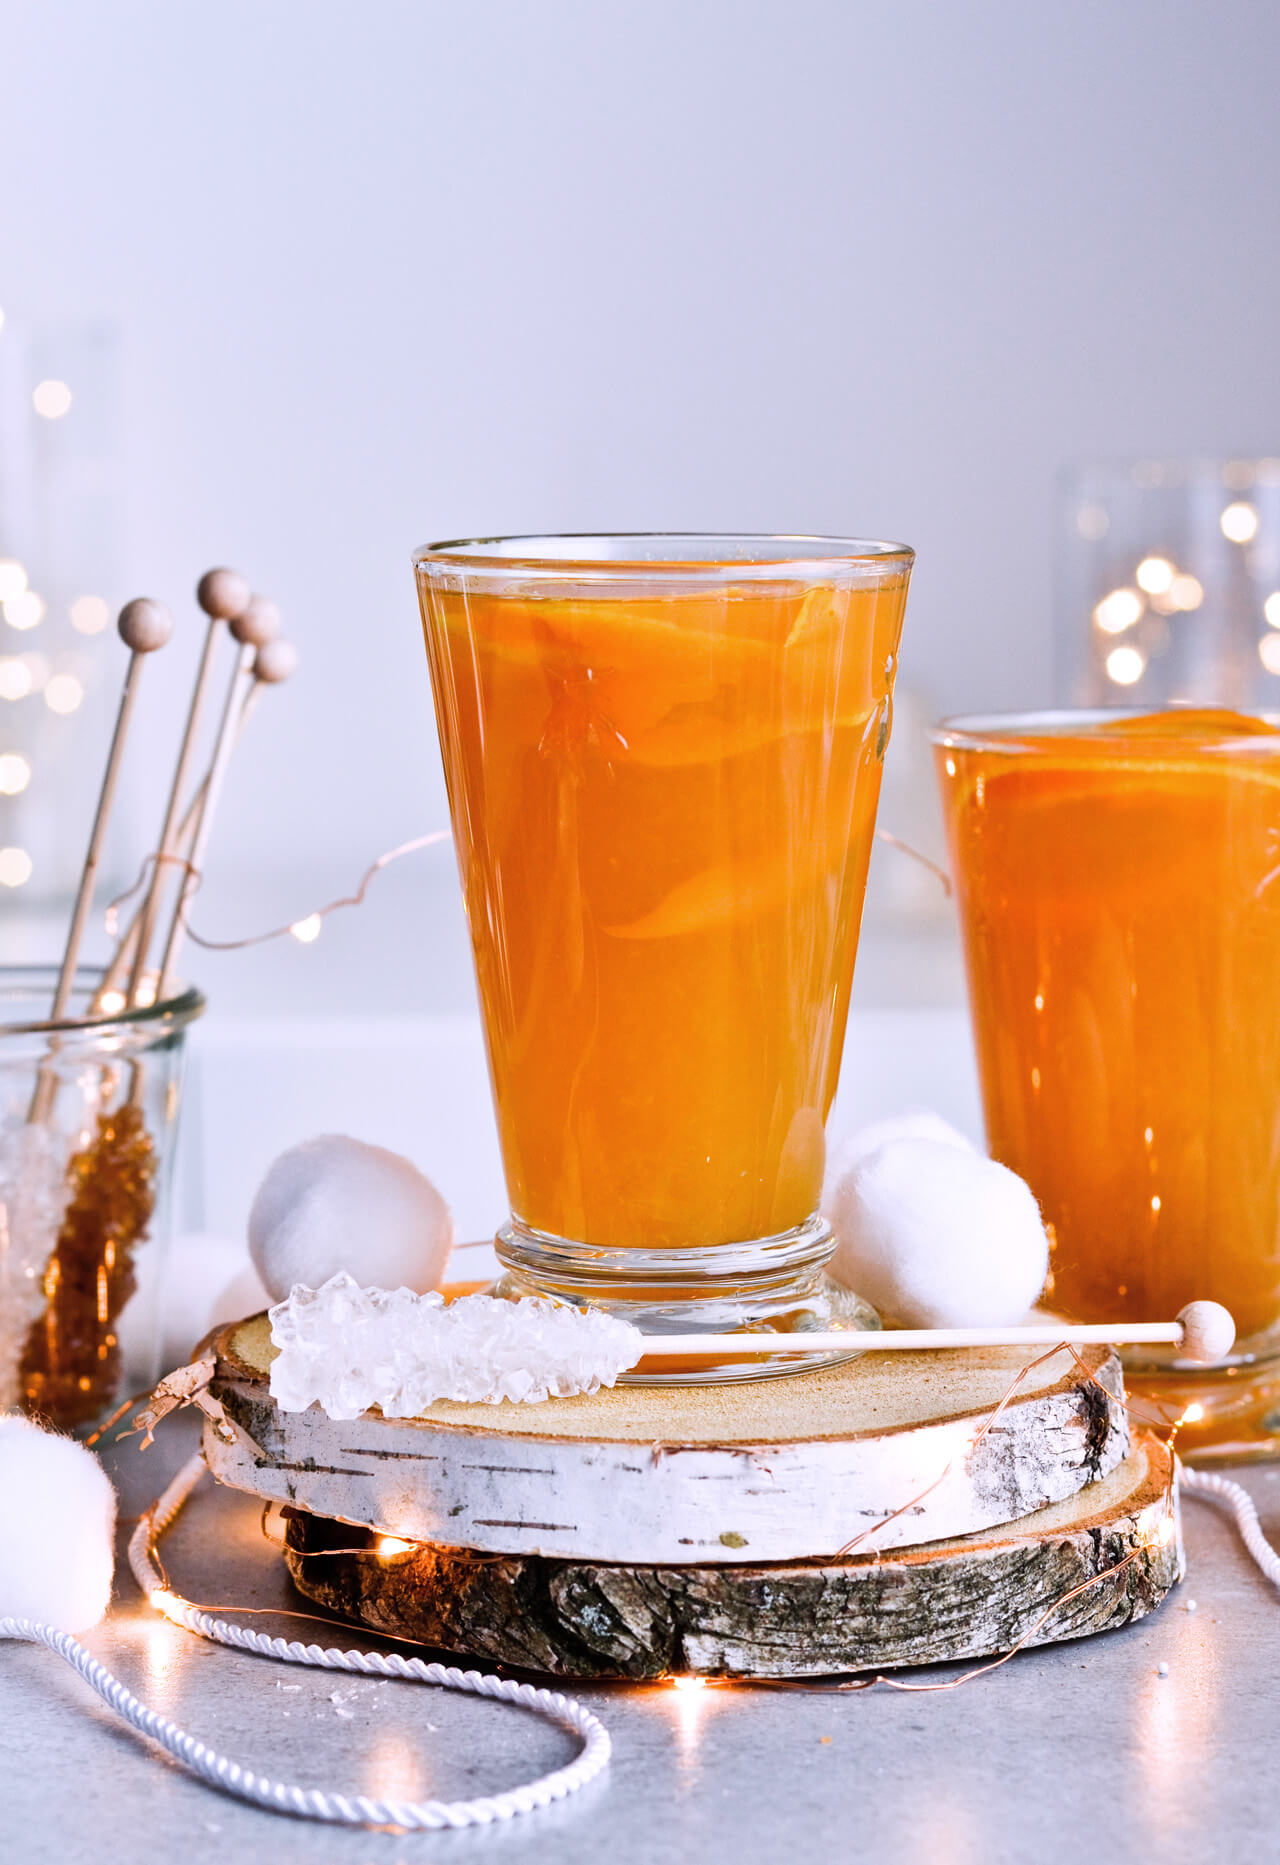 Recipe for Winter tea rum punch, the perfect winter cozy drink! Made with orange juice, honey, ginger beer and cinnamon baked apple teas! Served with orange twists and sugar swizzle sticks. A great cocktail made in 15 minutes! | @mitzyathome mitzyathome.com